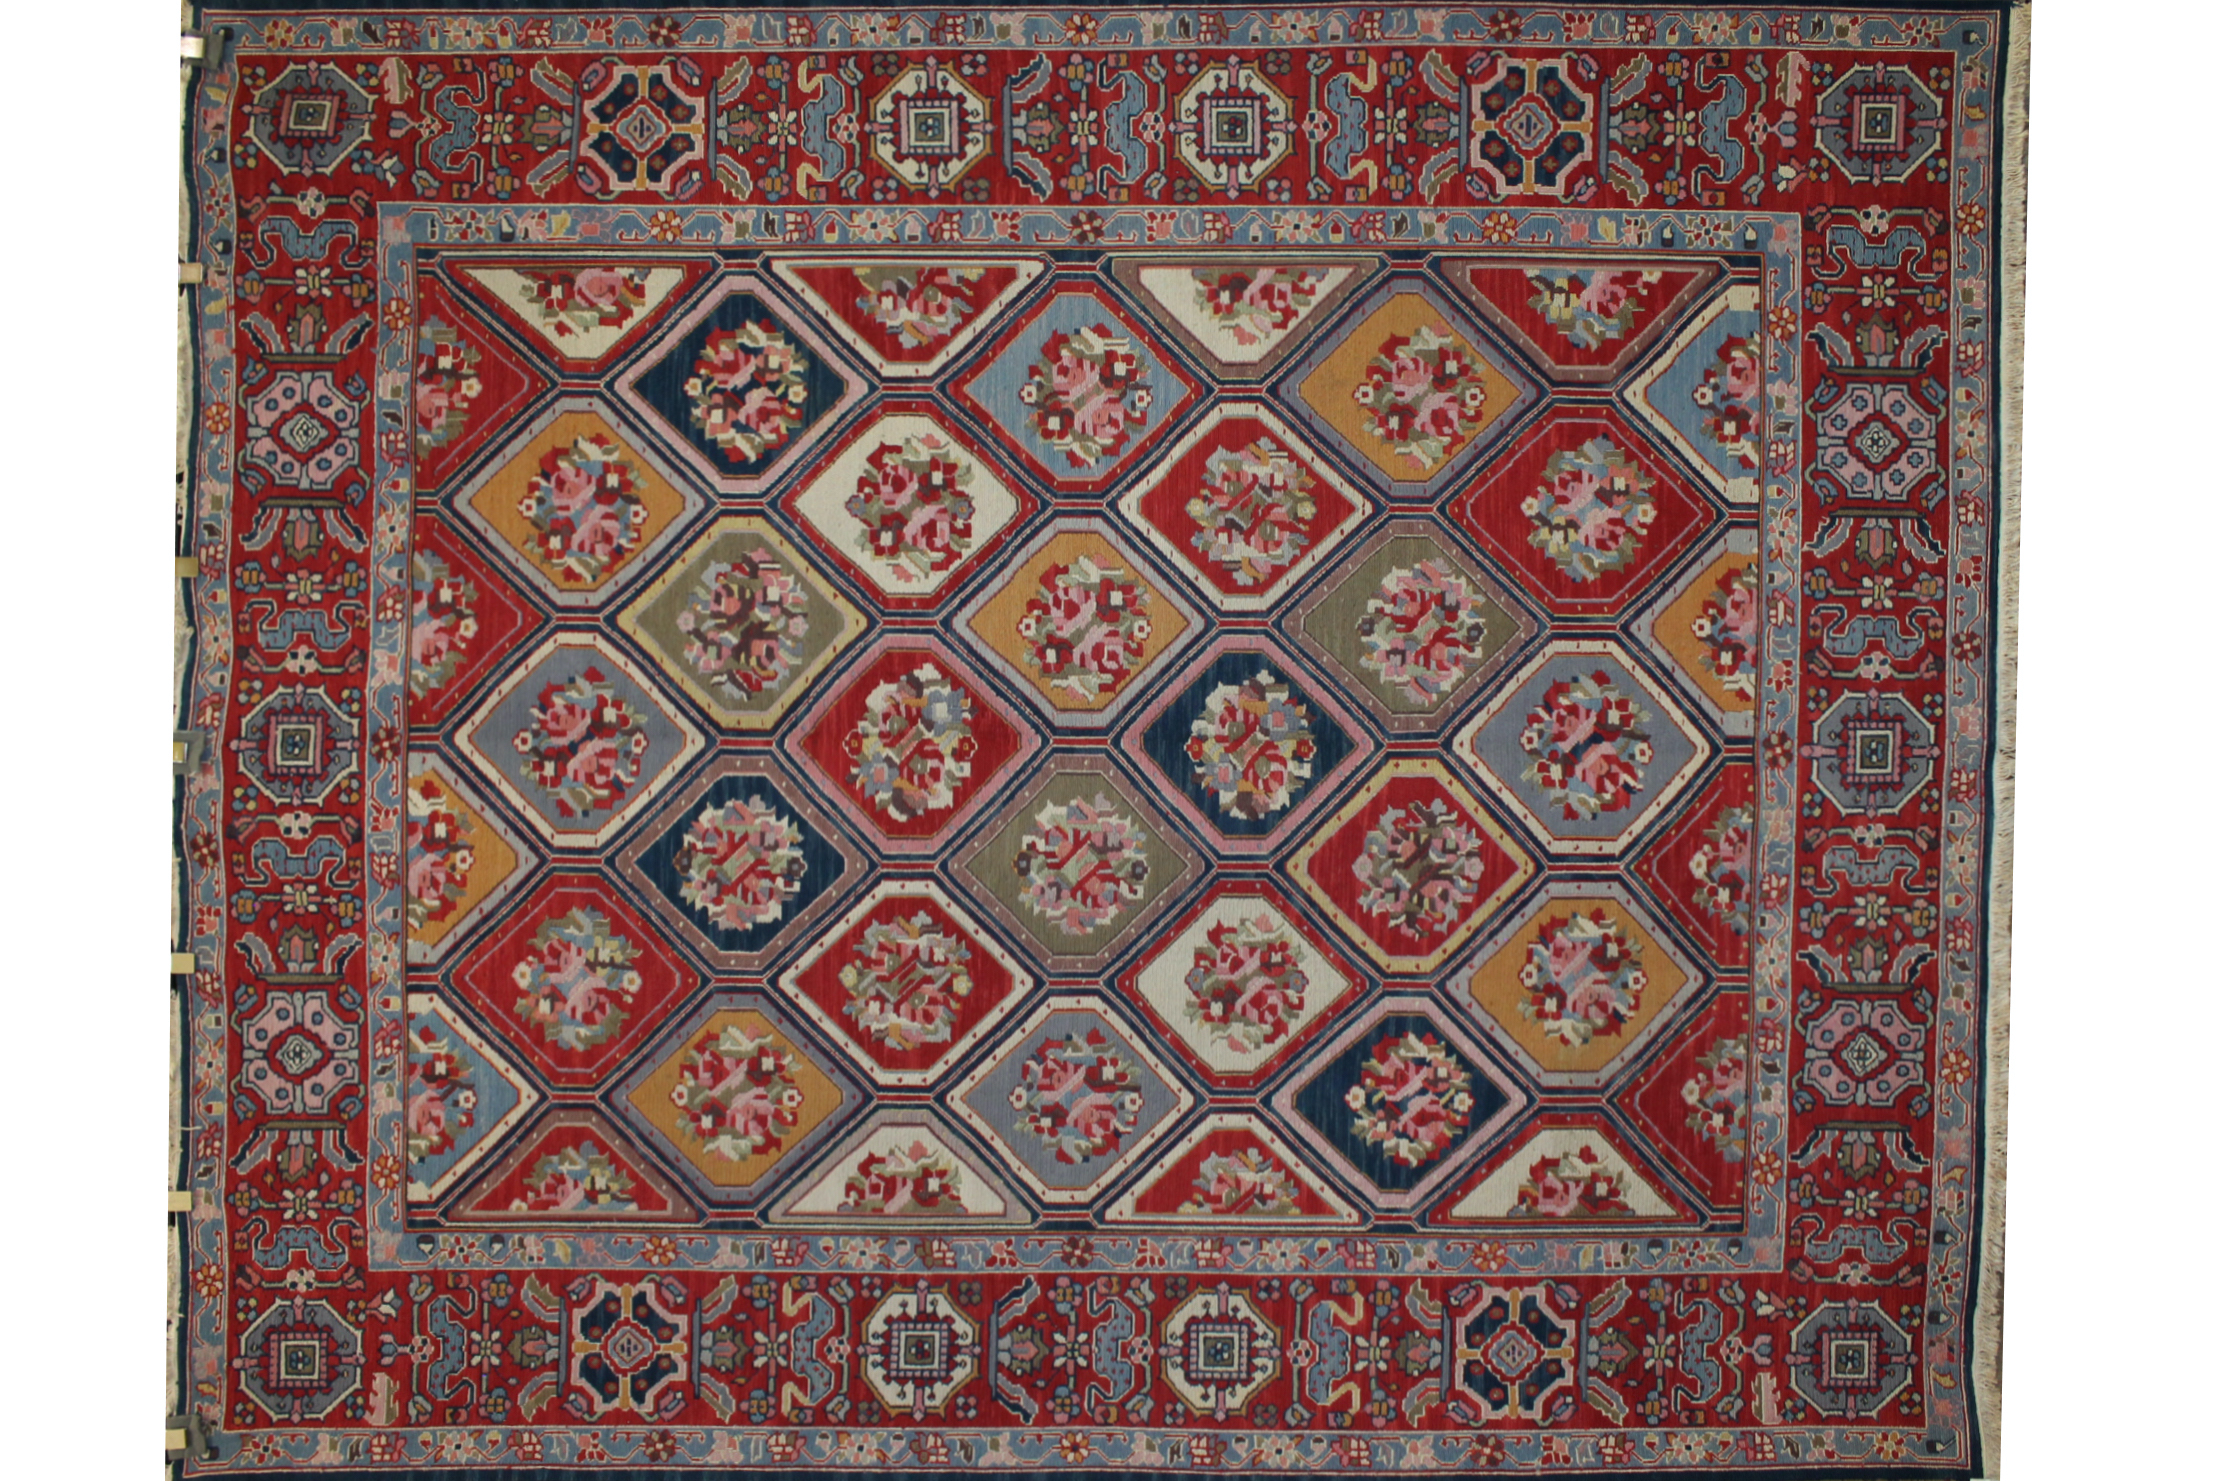 8x10 Traditional Hand Knotted Wool Area Rug - MR020188